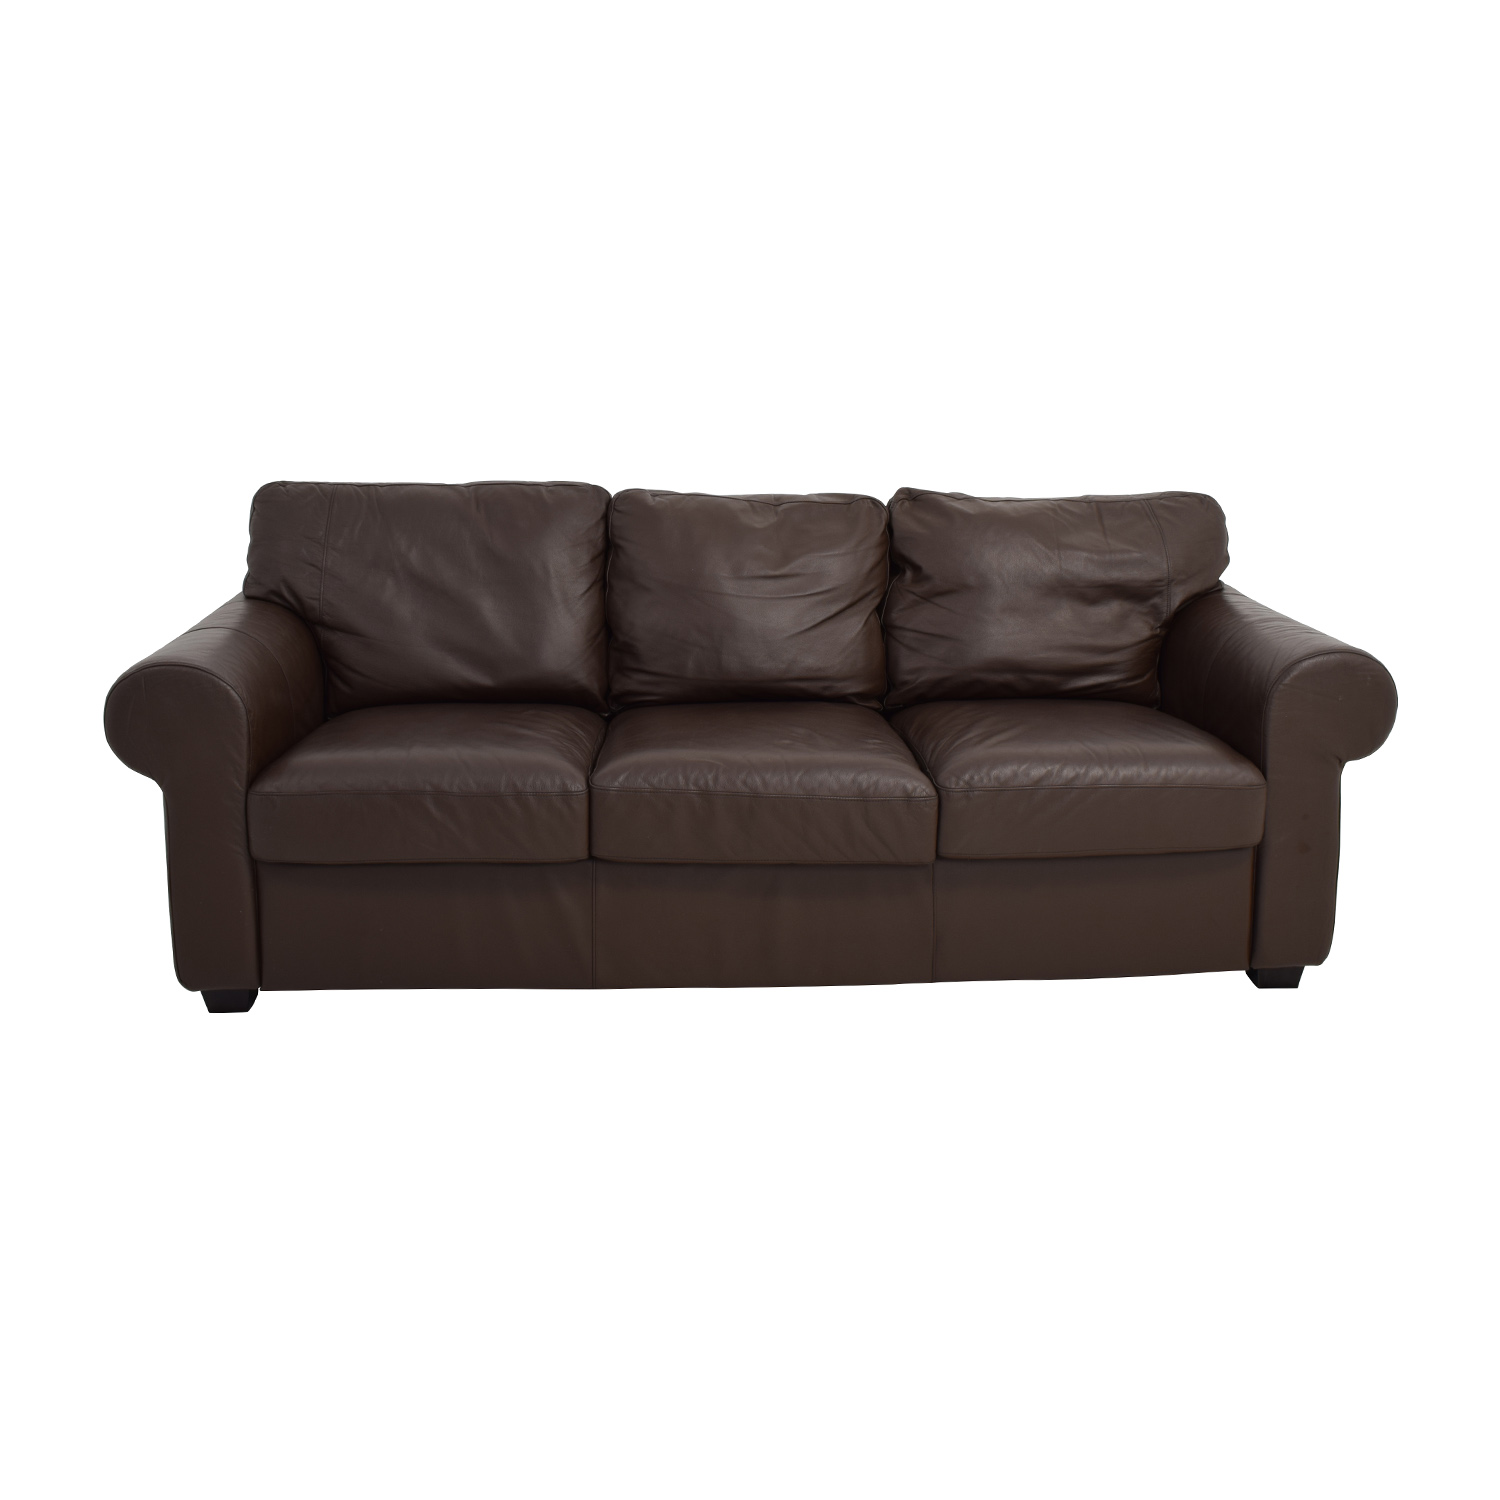 IKEA IKEA Dark Brown Three Cushion Leather Couch coupon